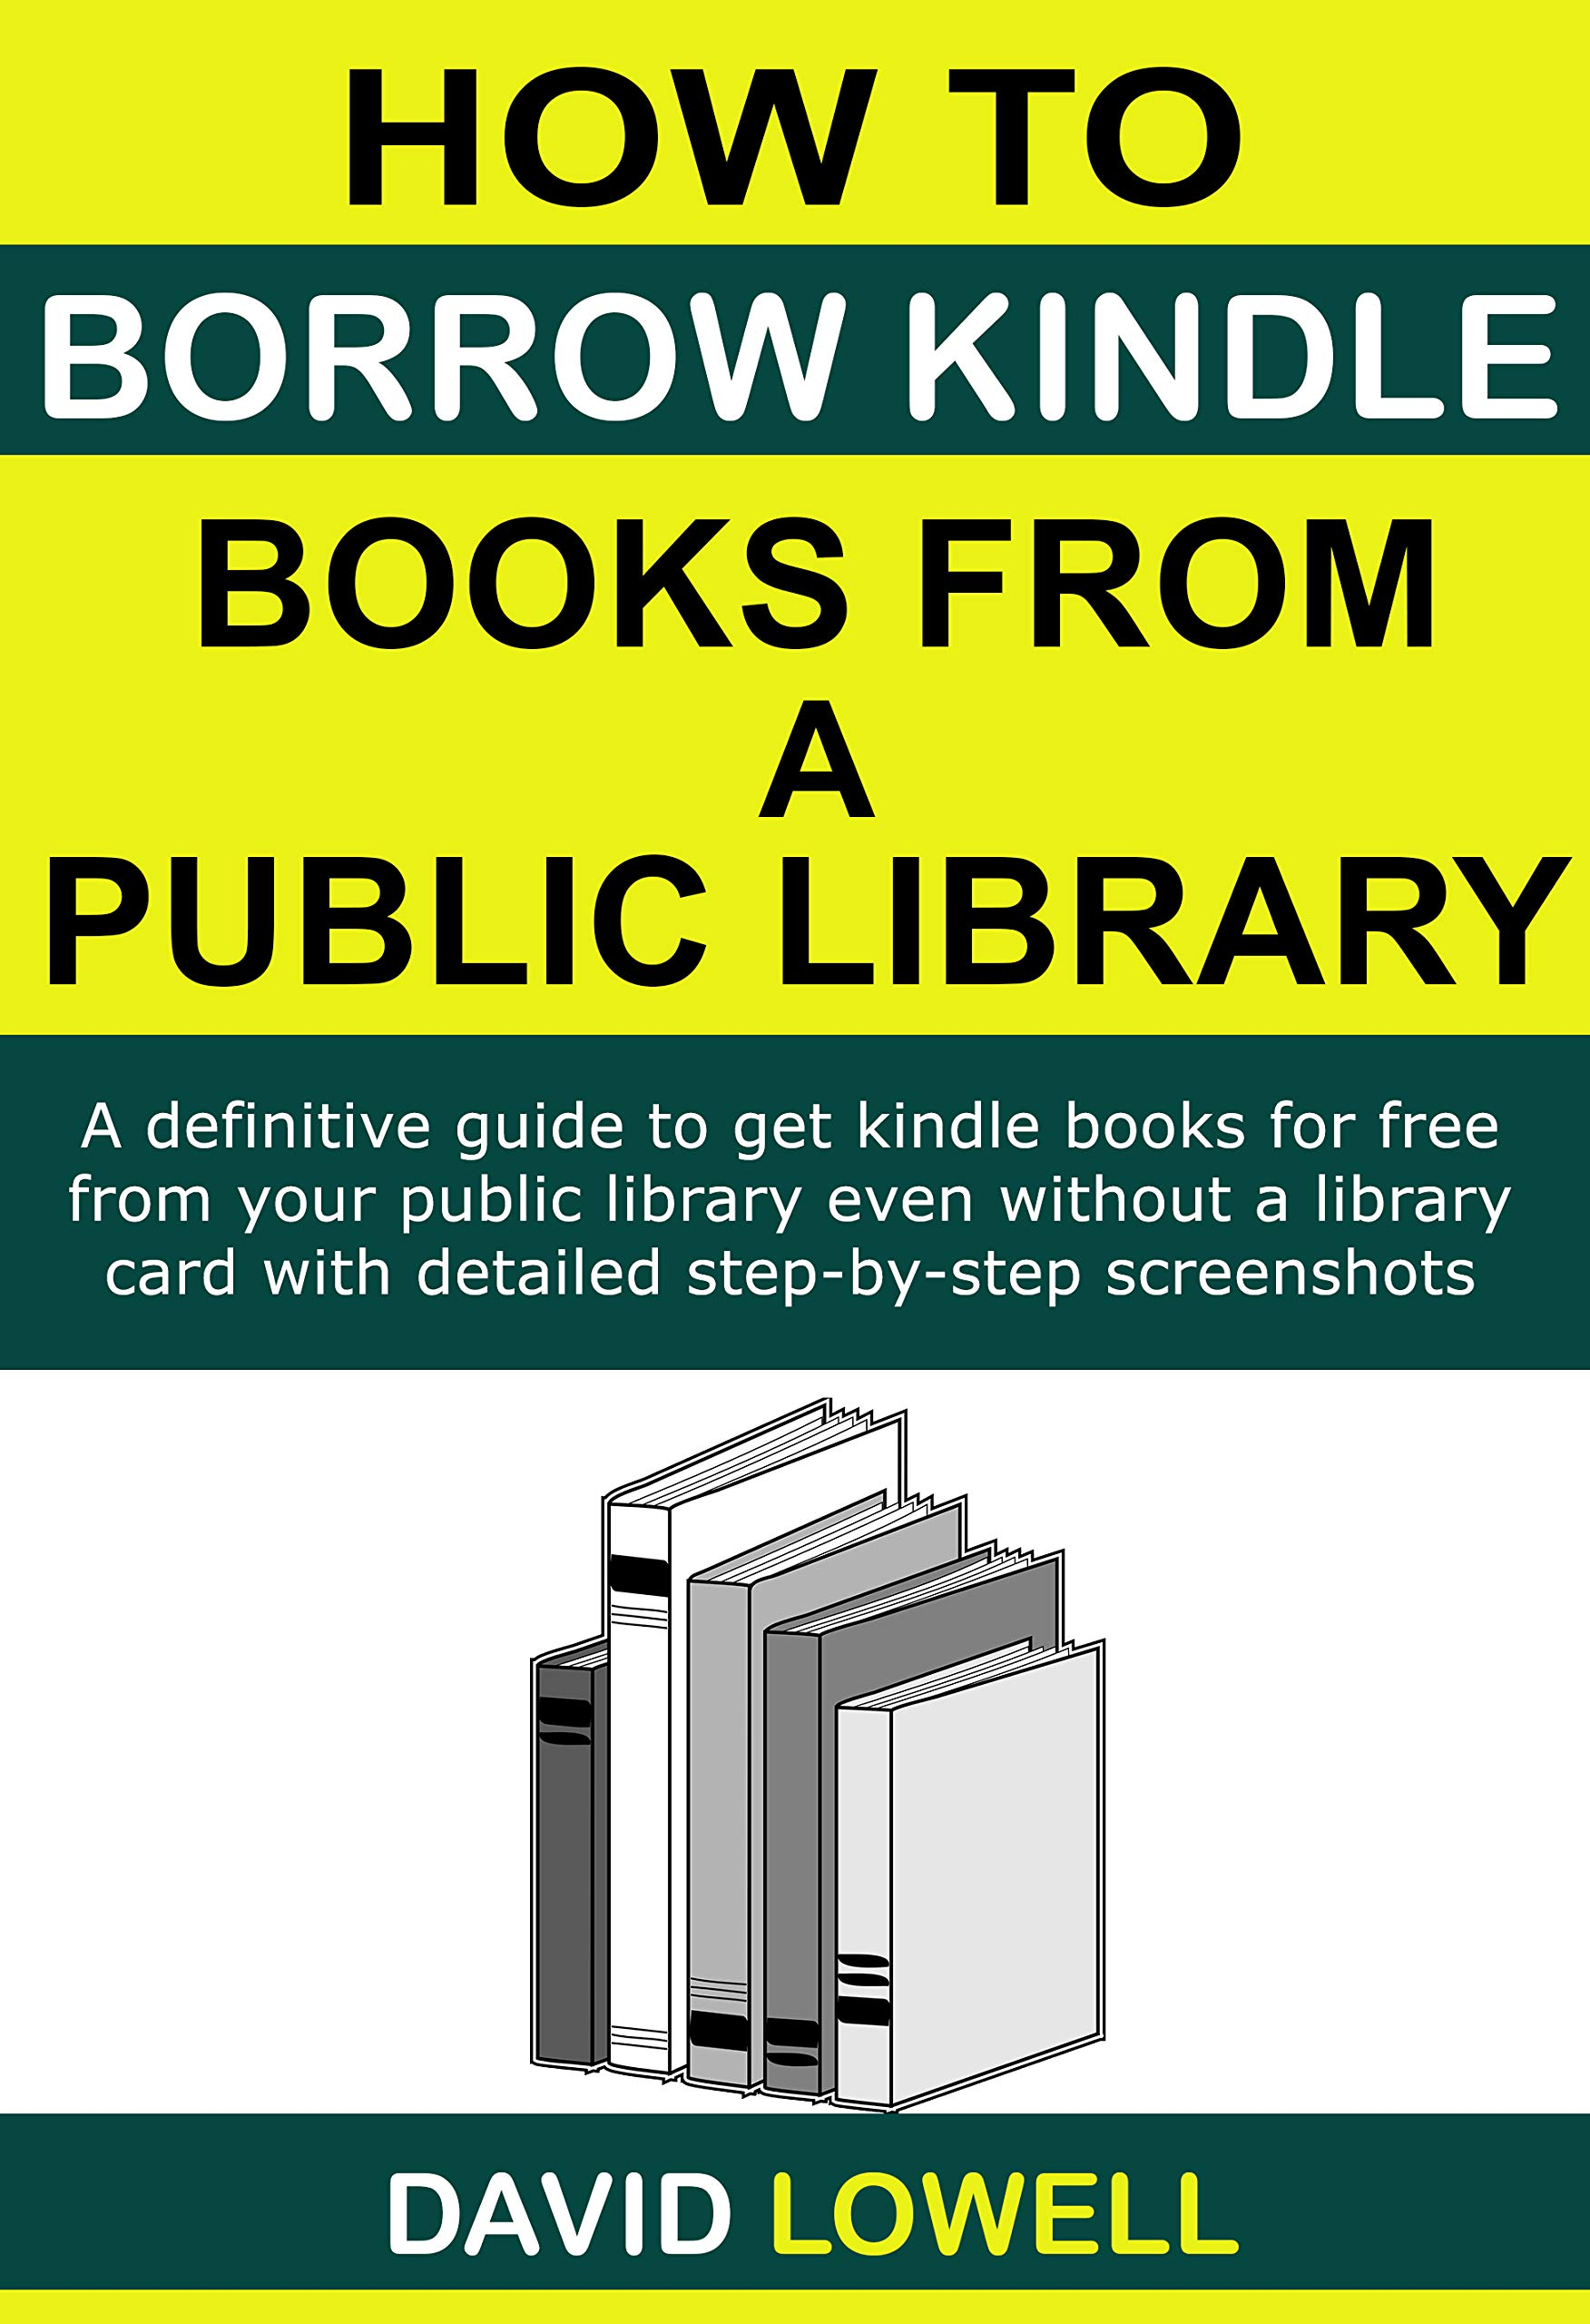 How to Borrow Kindle Books from a Public Library : A definitive guide to get Kindle ebooks for free from your public library even without a library card with detailed step-by-step screenshots